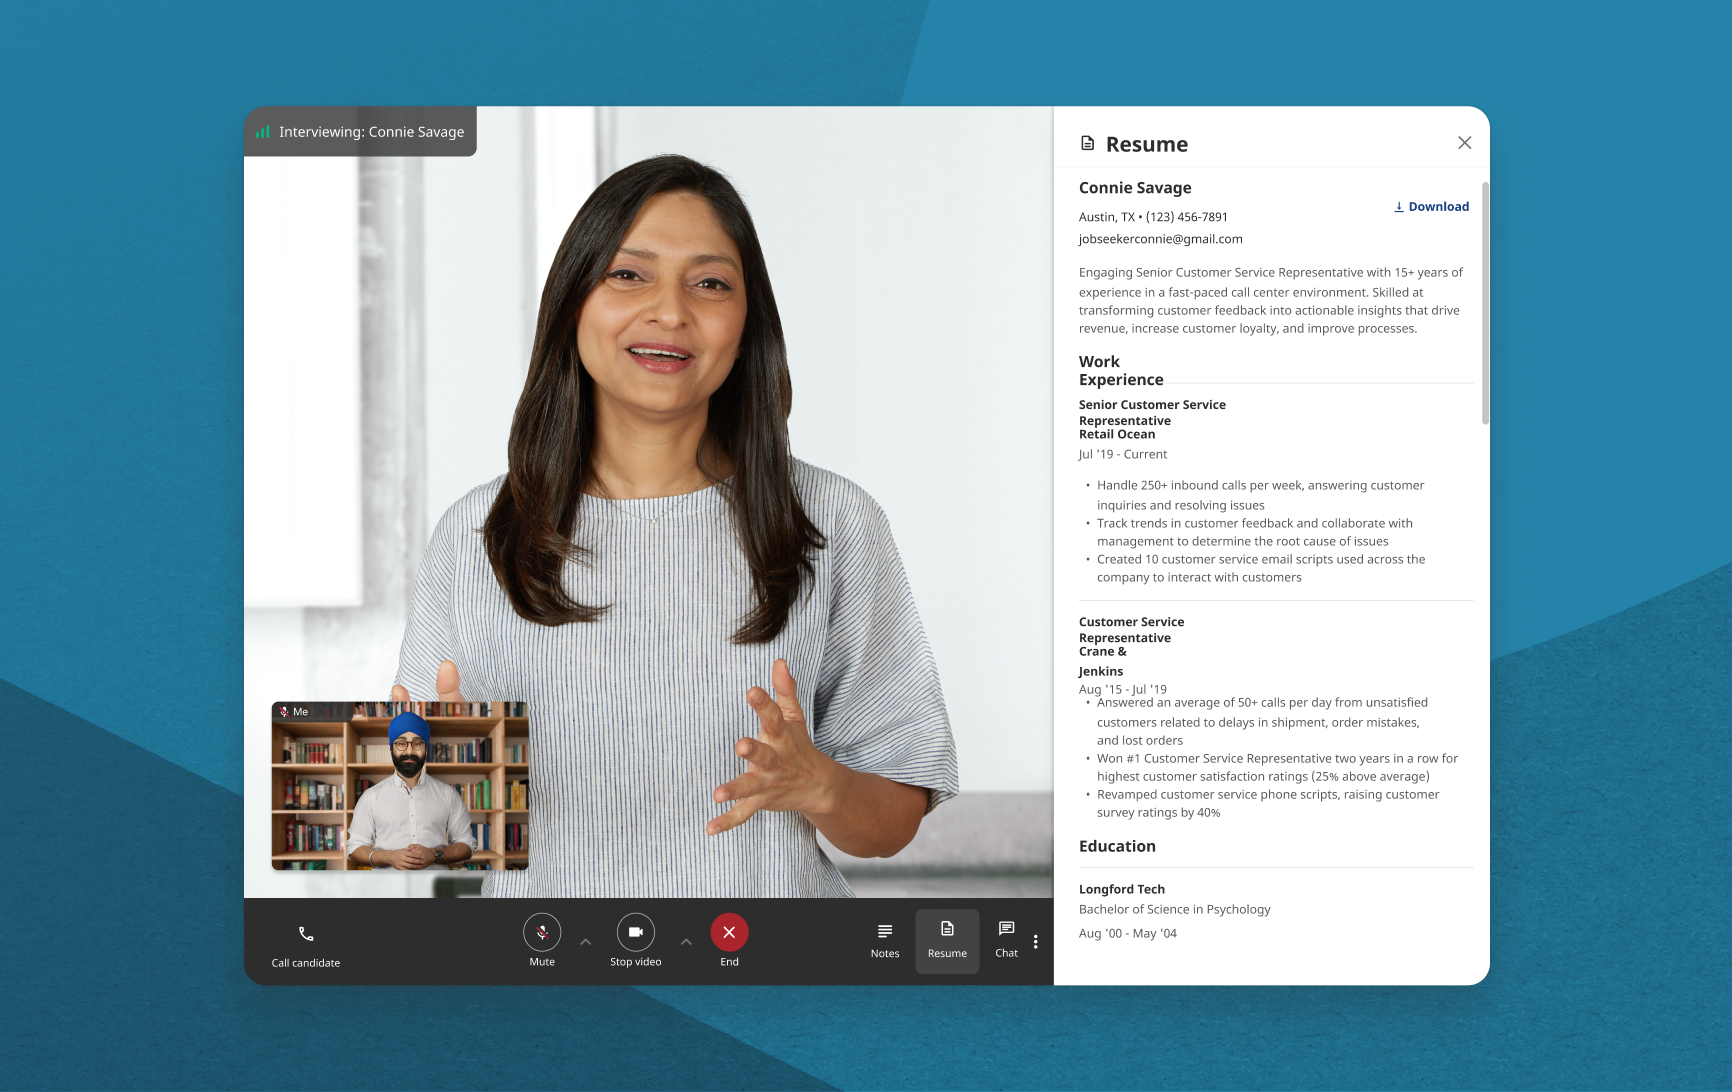 Screenshot of an employer interviewing a candidate on the hiring platform. The candidate resume is displayed beside the video.